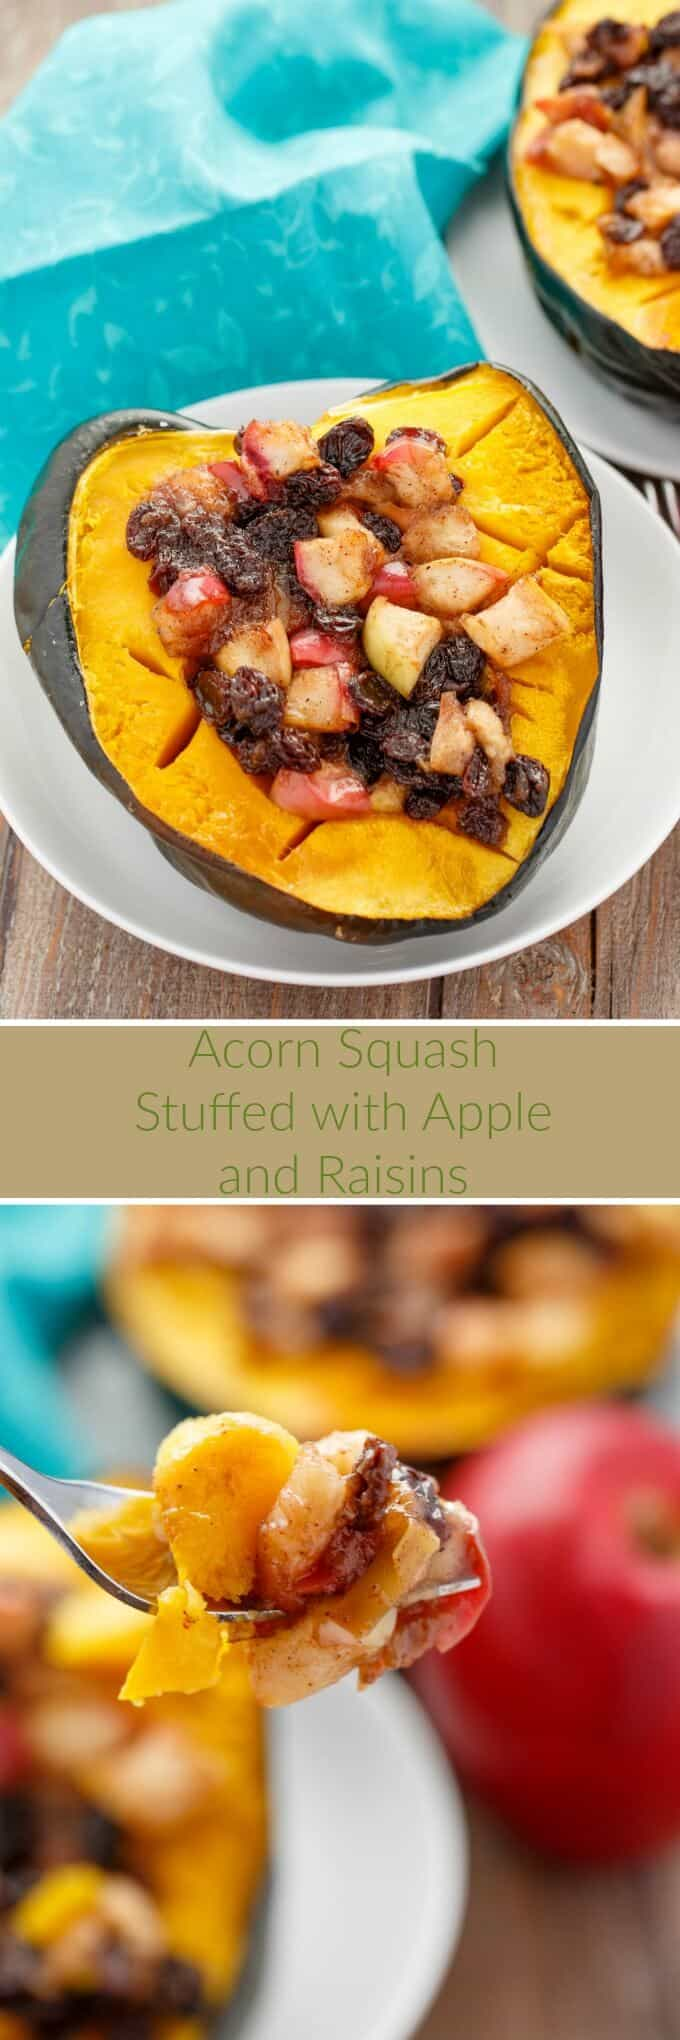 acorn-squash-stuffed-with-apple-and-raisins